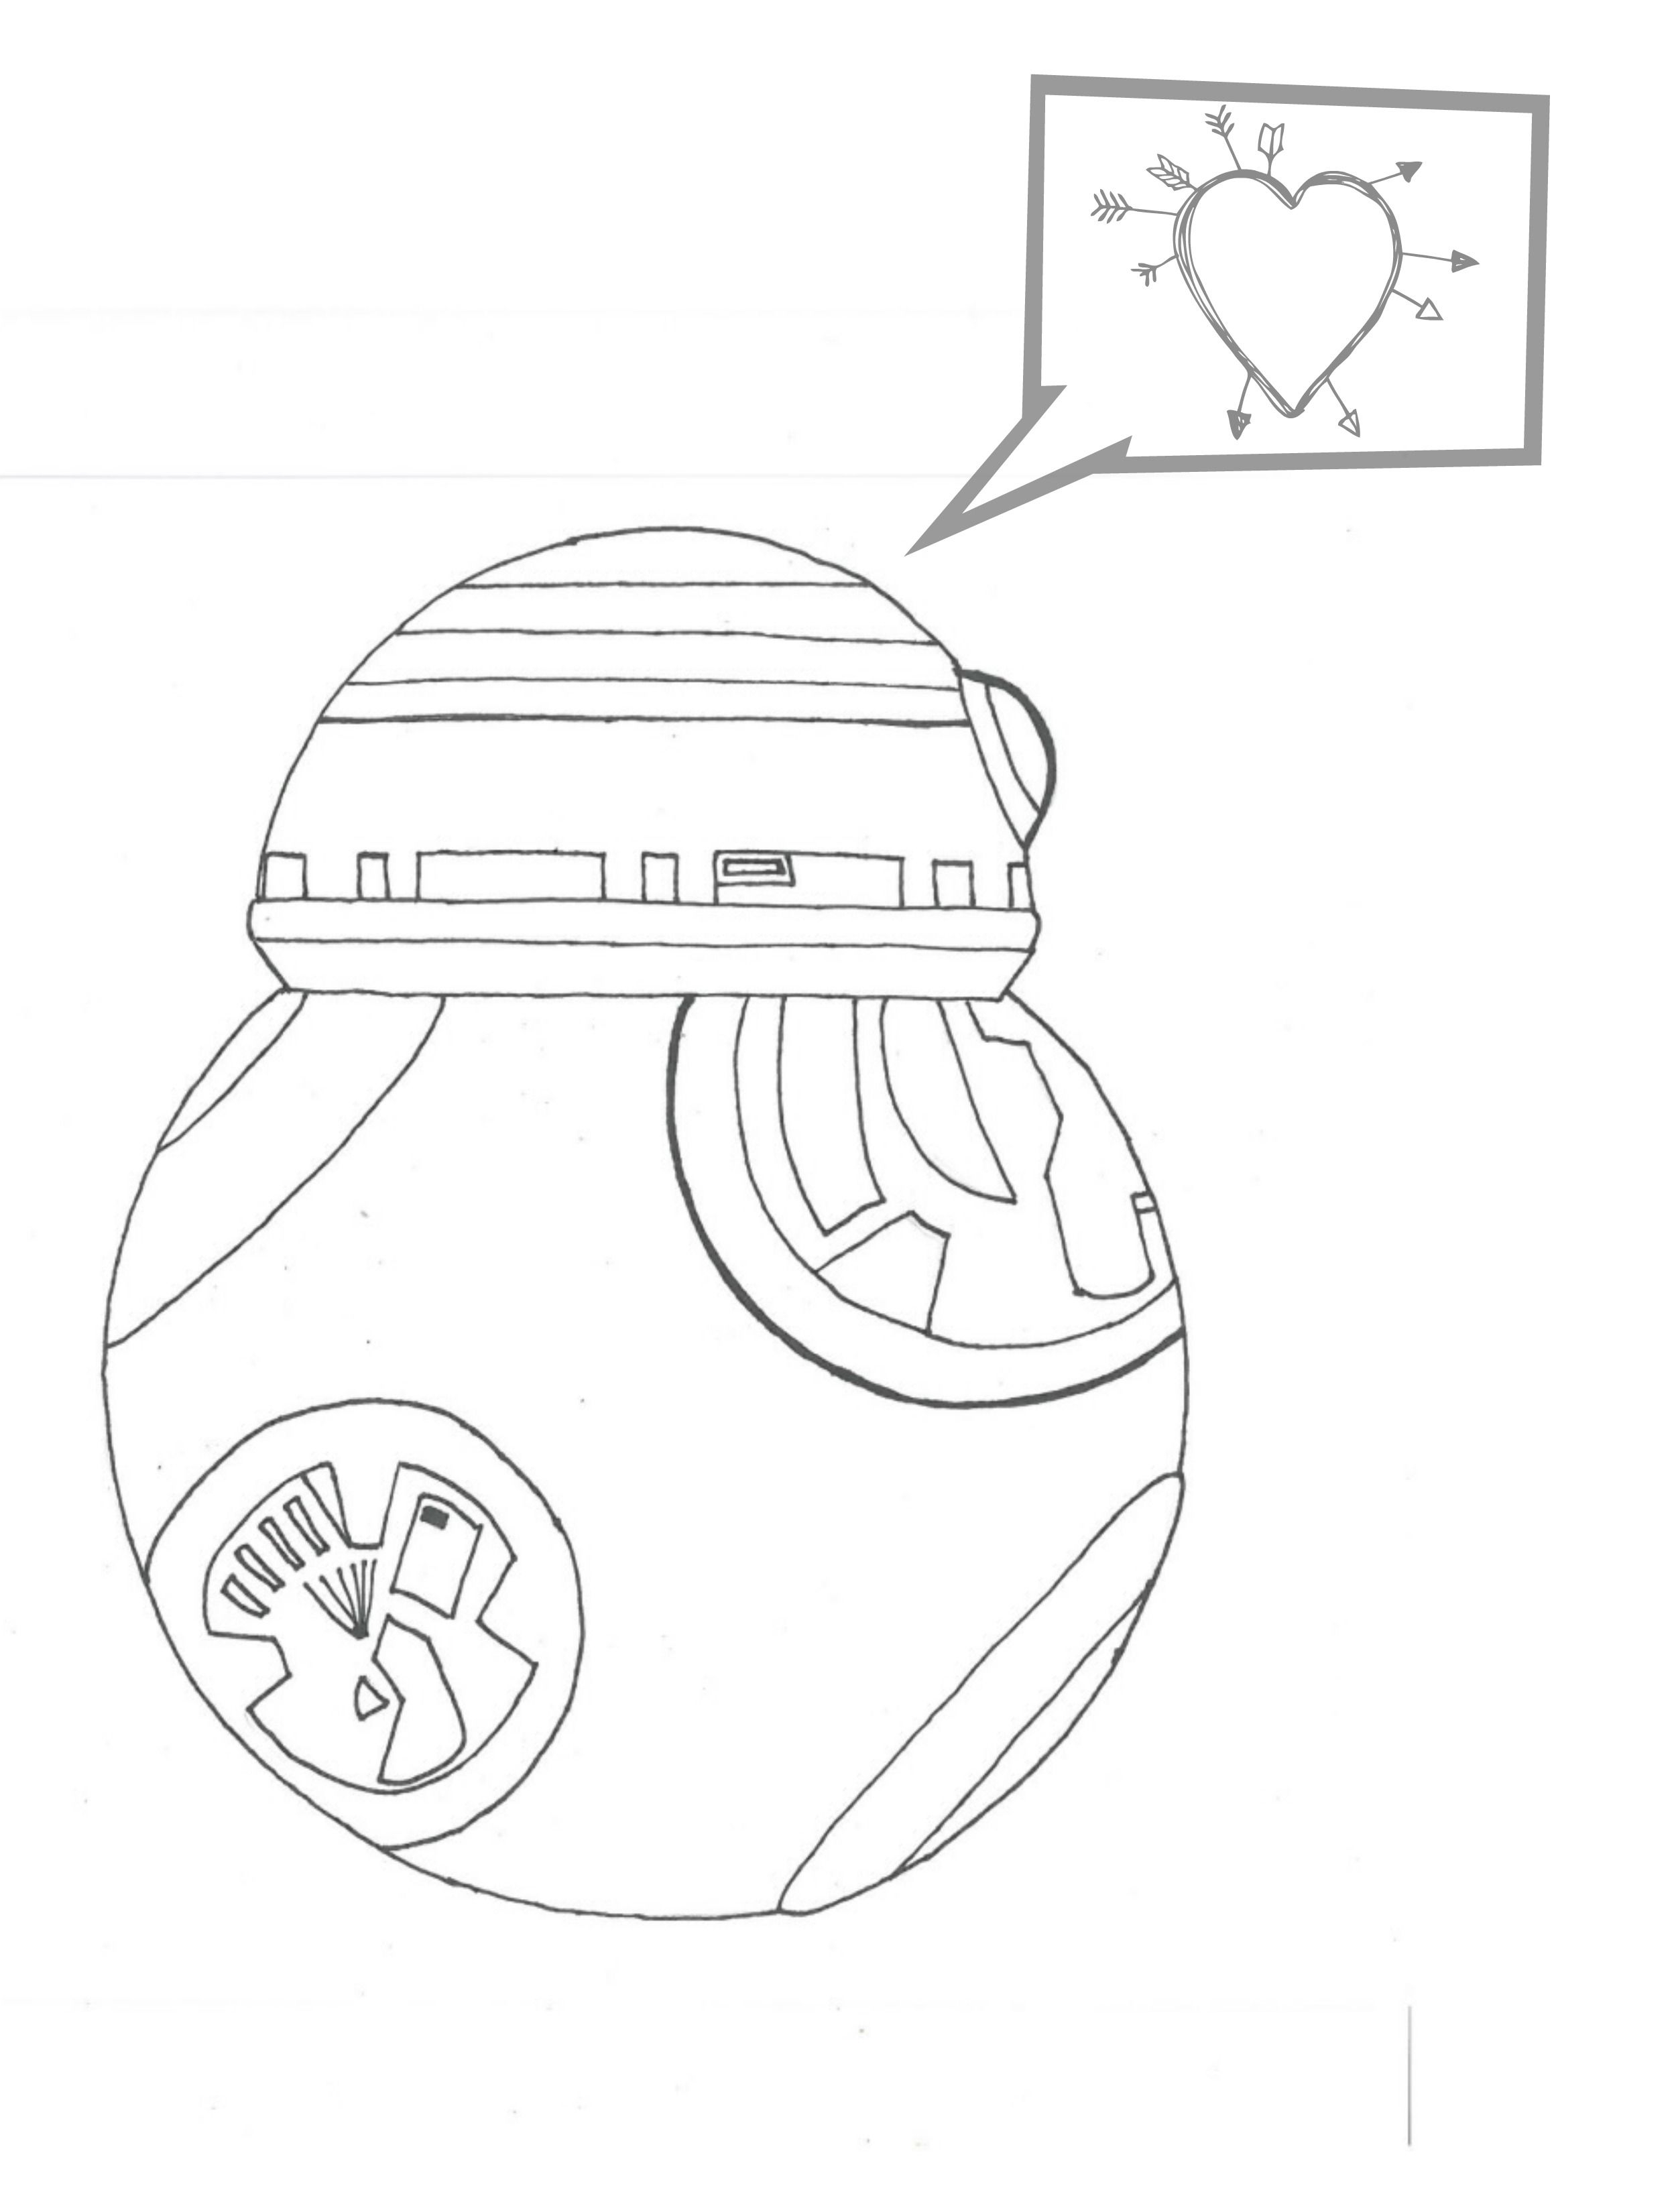 bb8 coloring page - bb8 droid coloring pages sketch templates